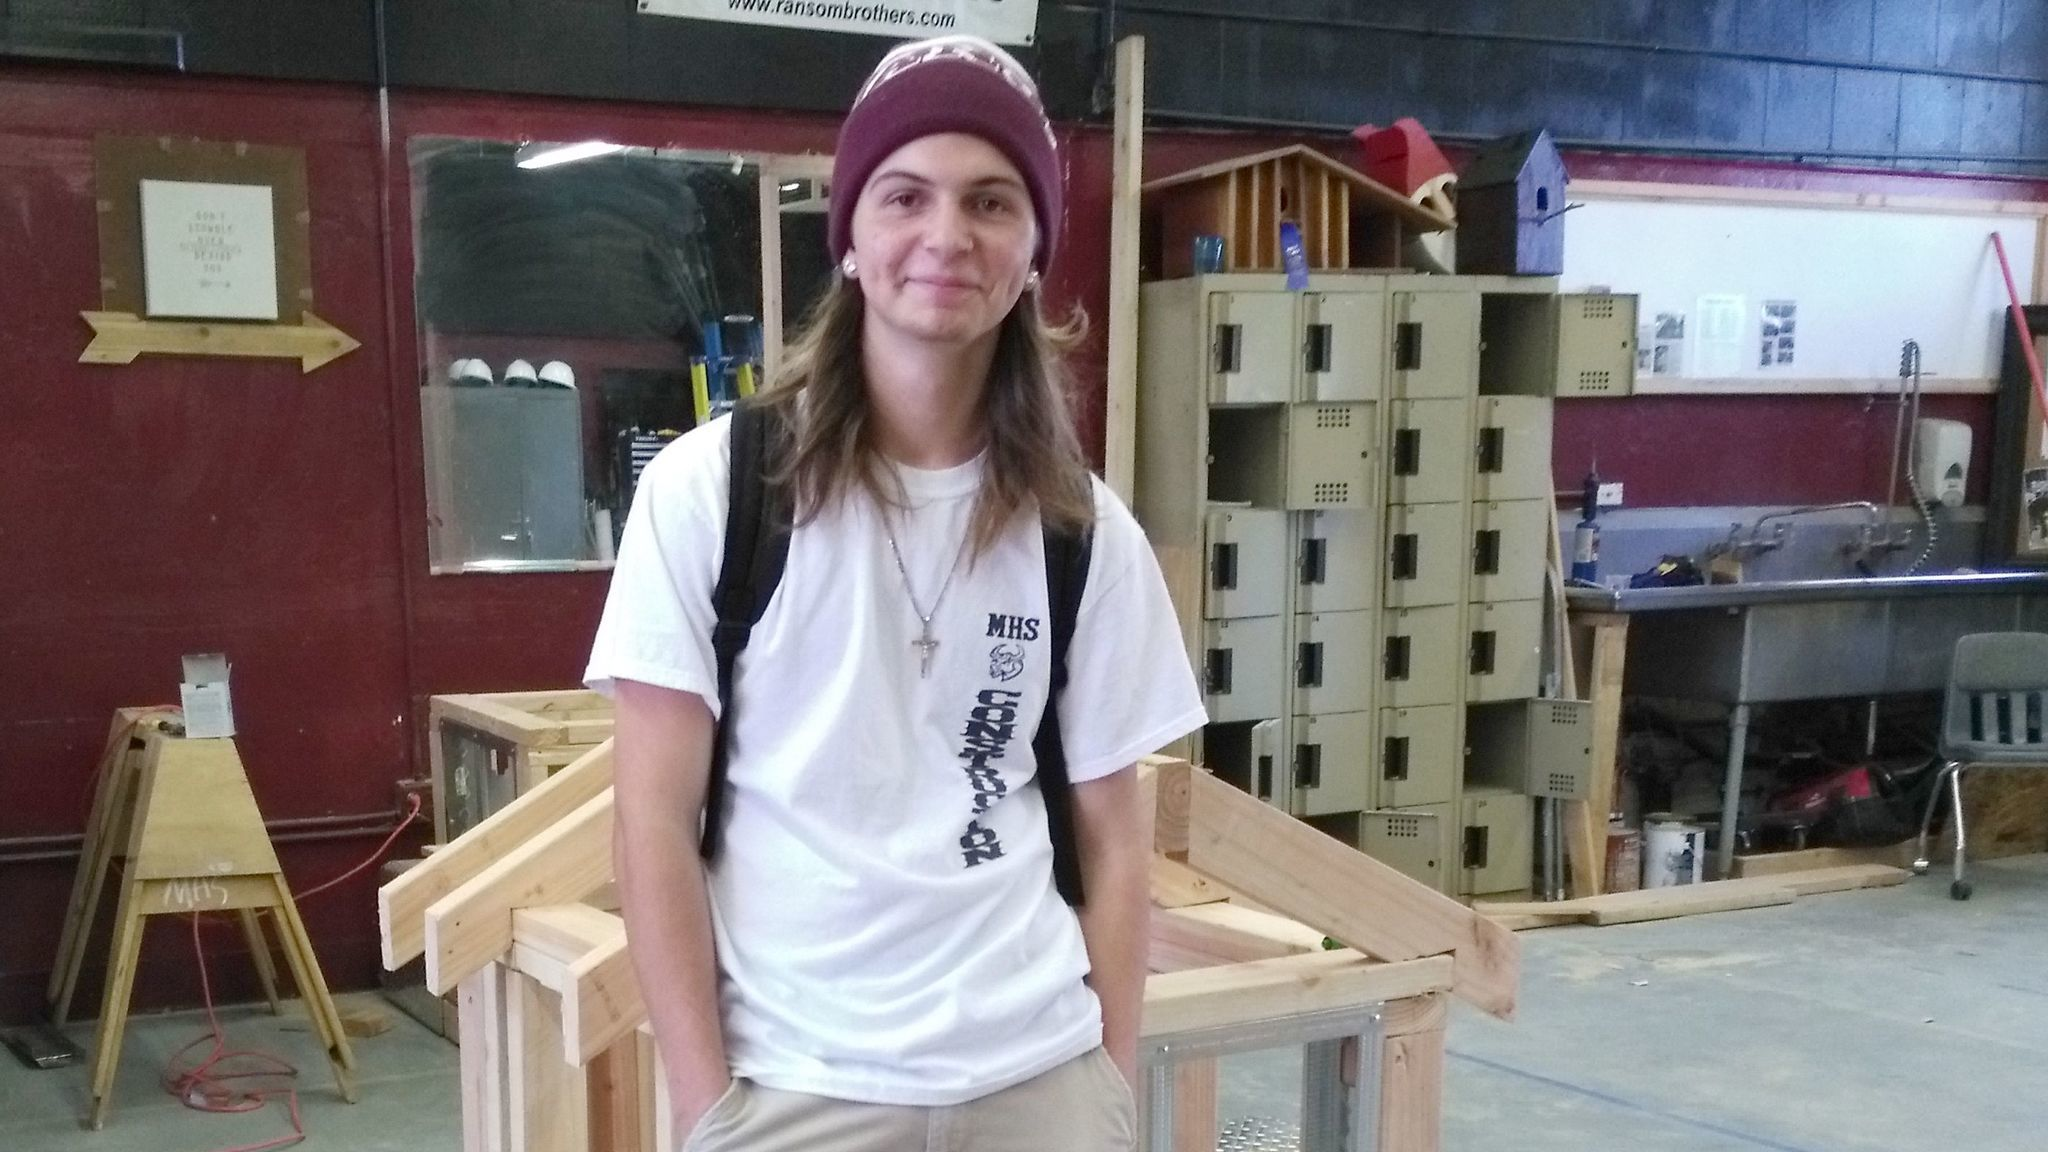 Montecito High School senior Adrian Elsasser is the proud winner of a first-place gold medal in the carpentry category at the SkillsUSA Region 6 competition.